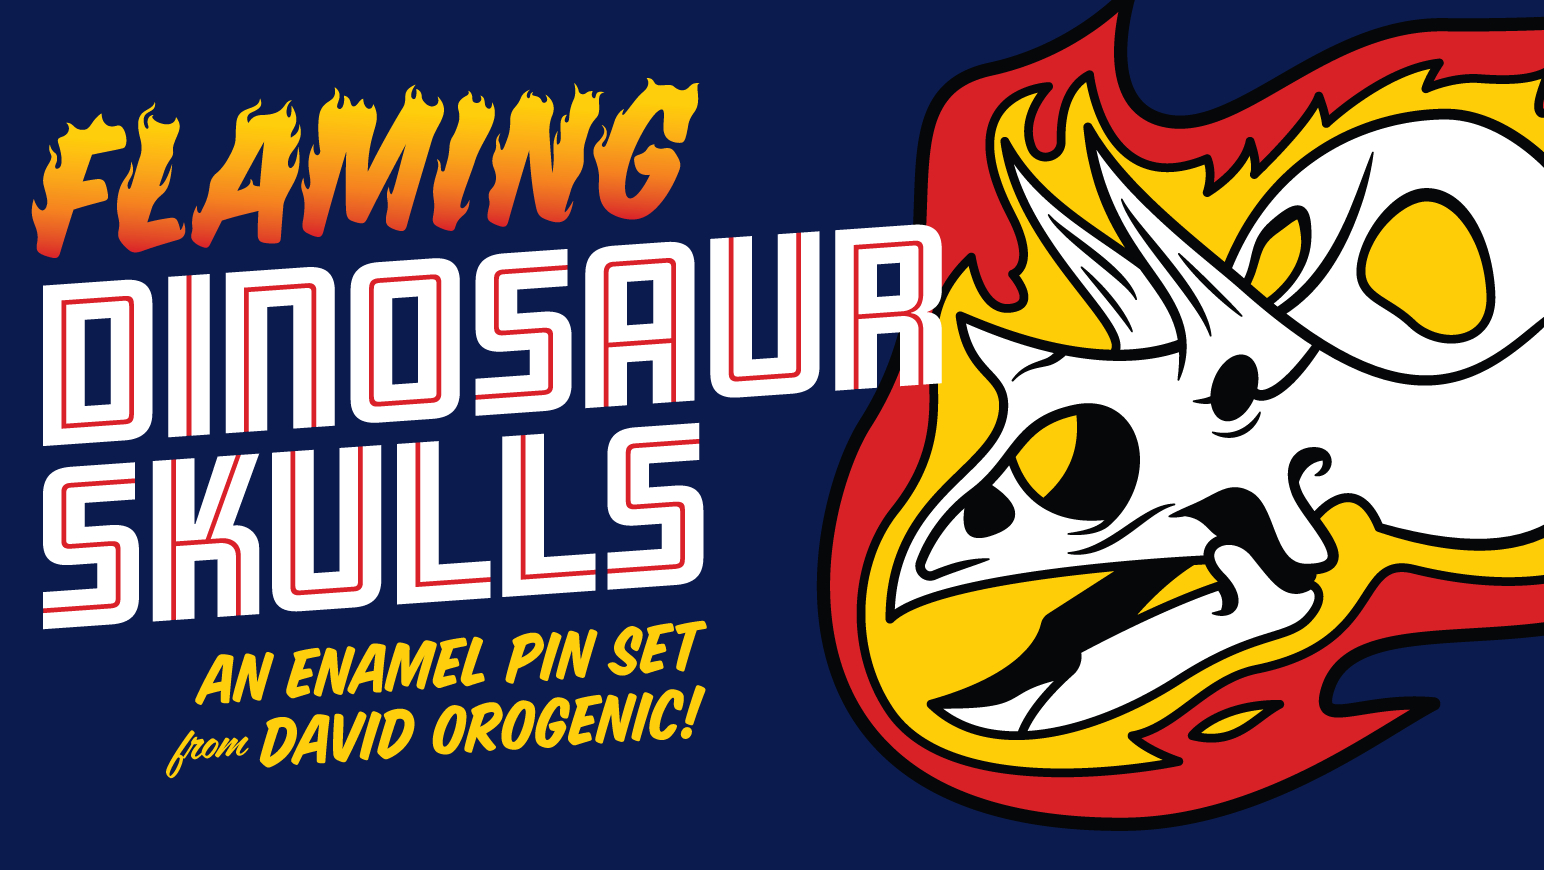 Promotional graphic for David Orr's Flaming Dinosaur Skulls Kickstarter campaign